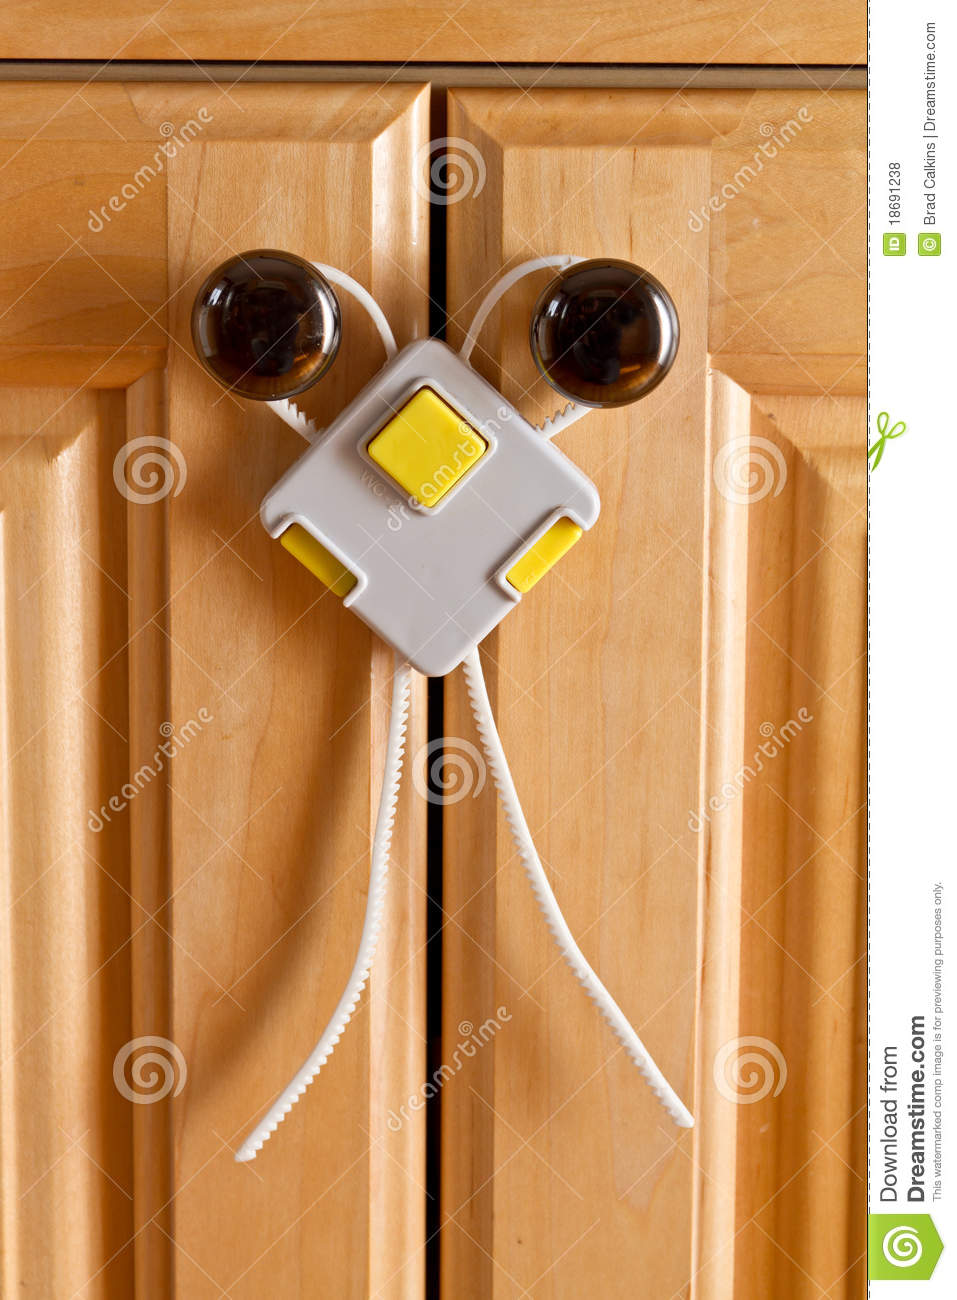 types of childproof cabinet locks cabinets matttroy. Black Bedroom Furniture Sets. Home Design Ideas